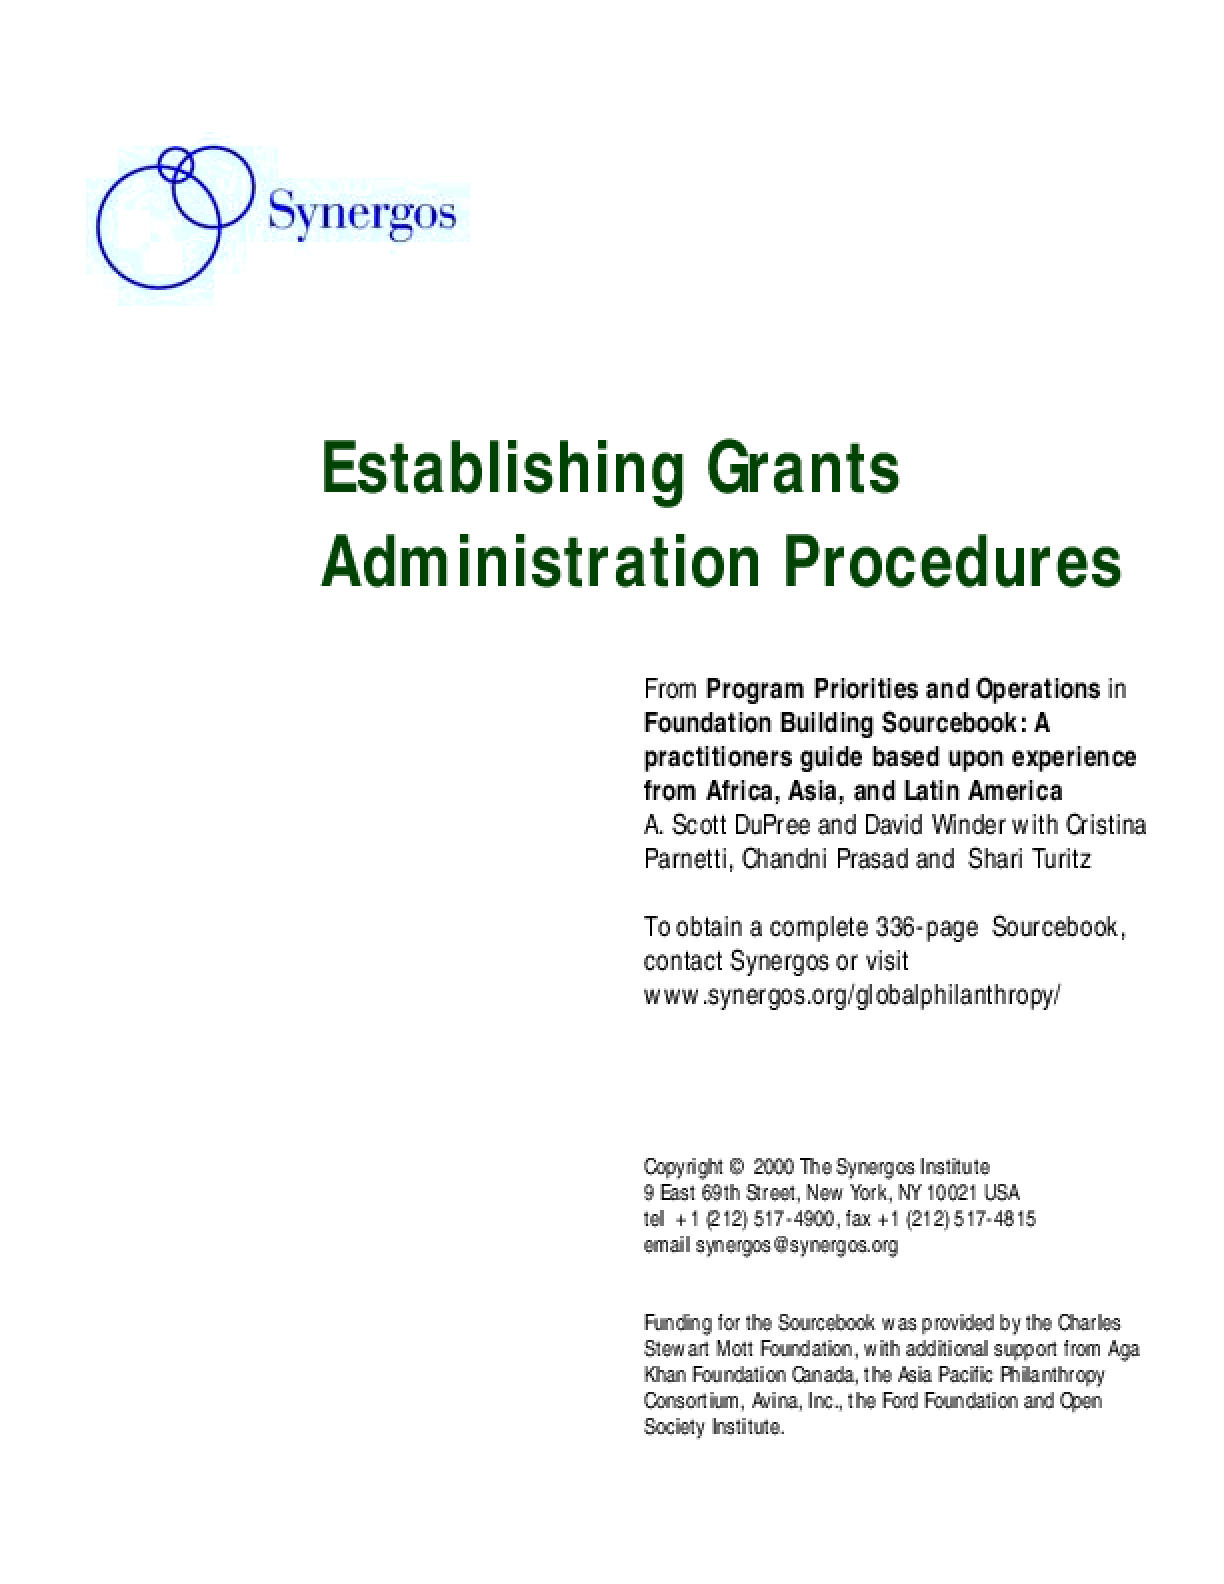 Establishing Grants Administration Procedures